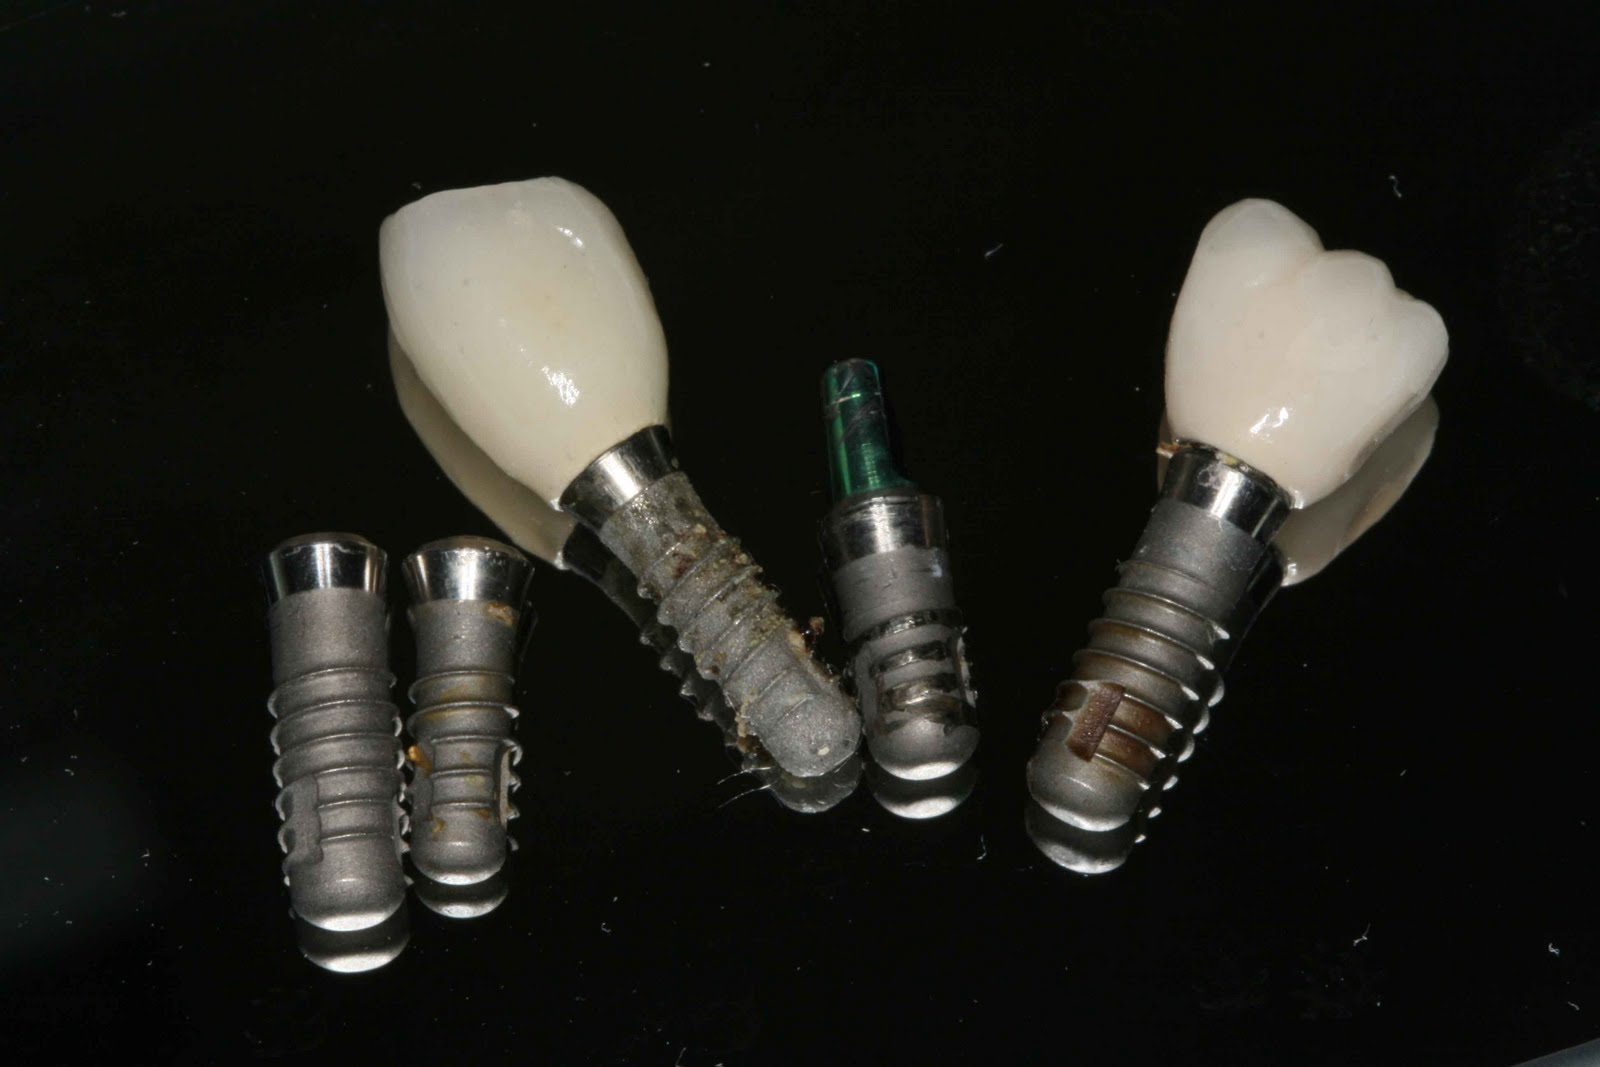 31 Oct 2011  What's up with $399 Dental Implants? (Above: failed implants referred to our   office for removalall implant knock-offs). Squeezed between